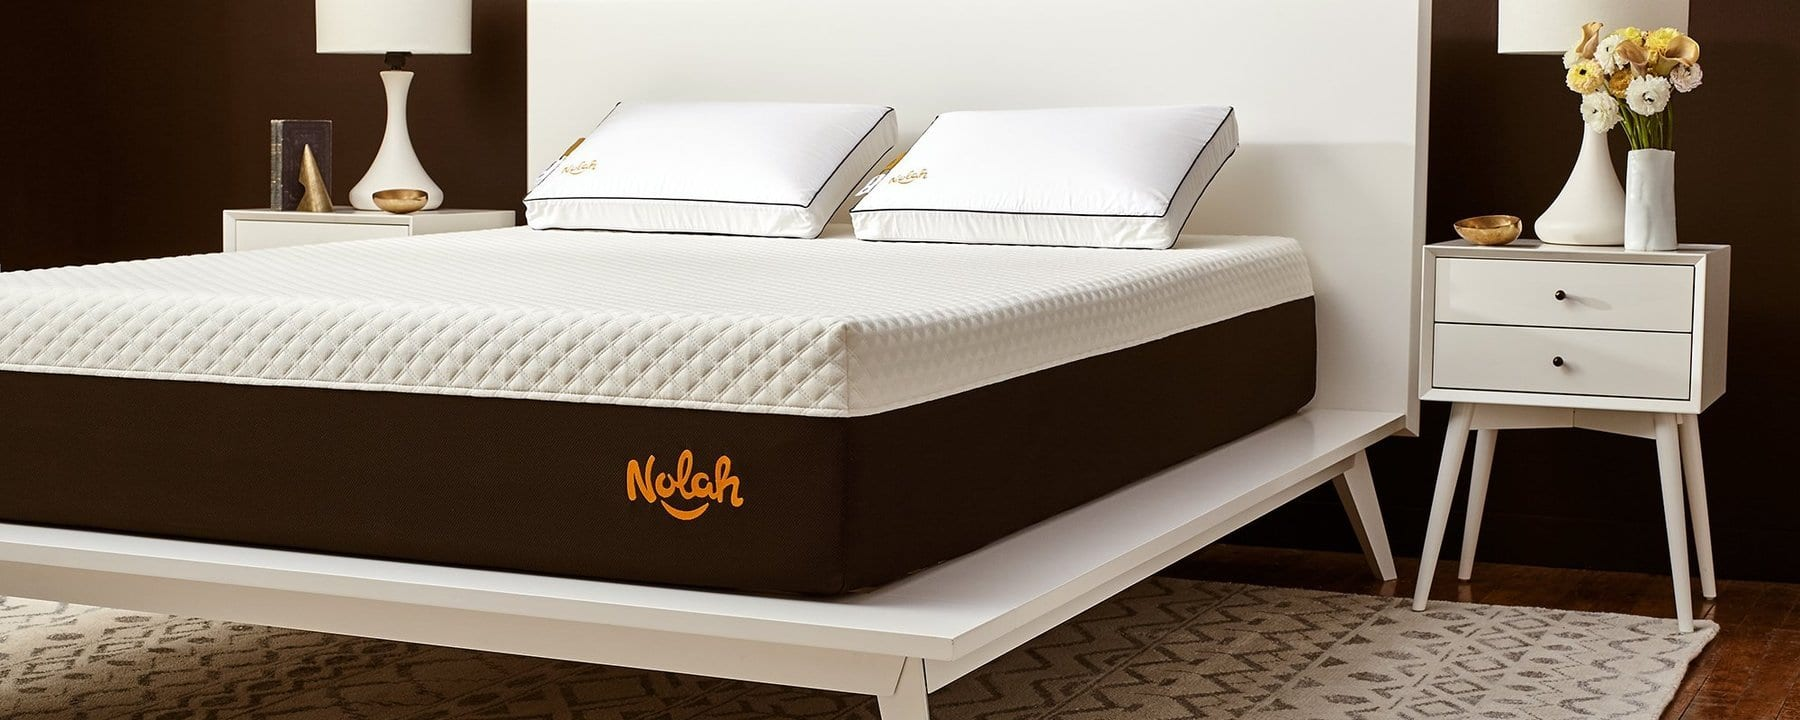 Nolah Signature Mattress review